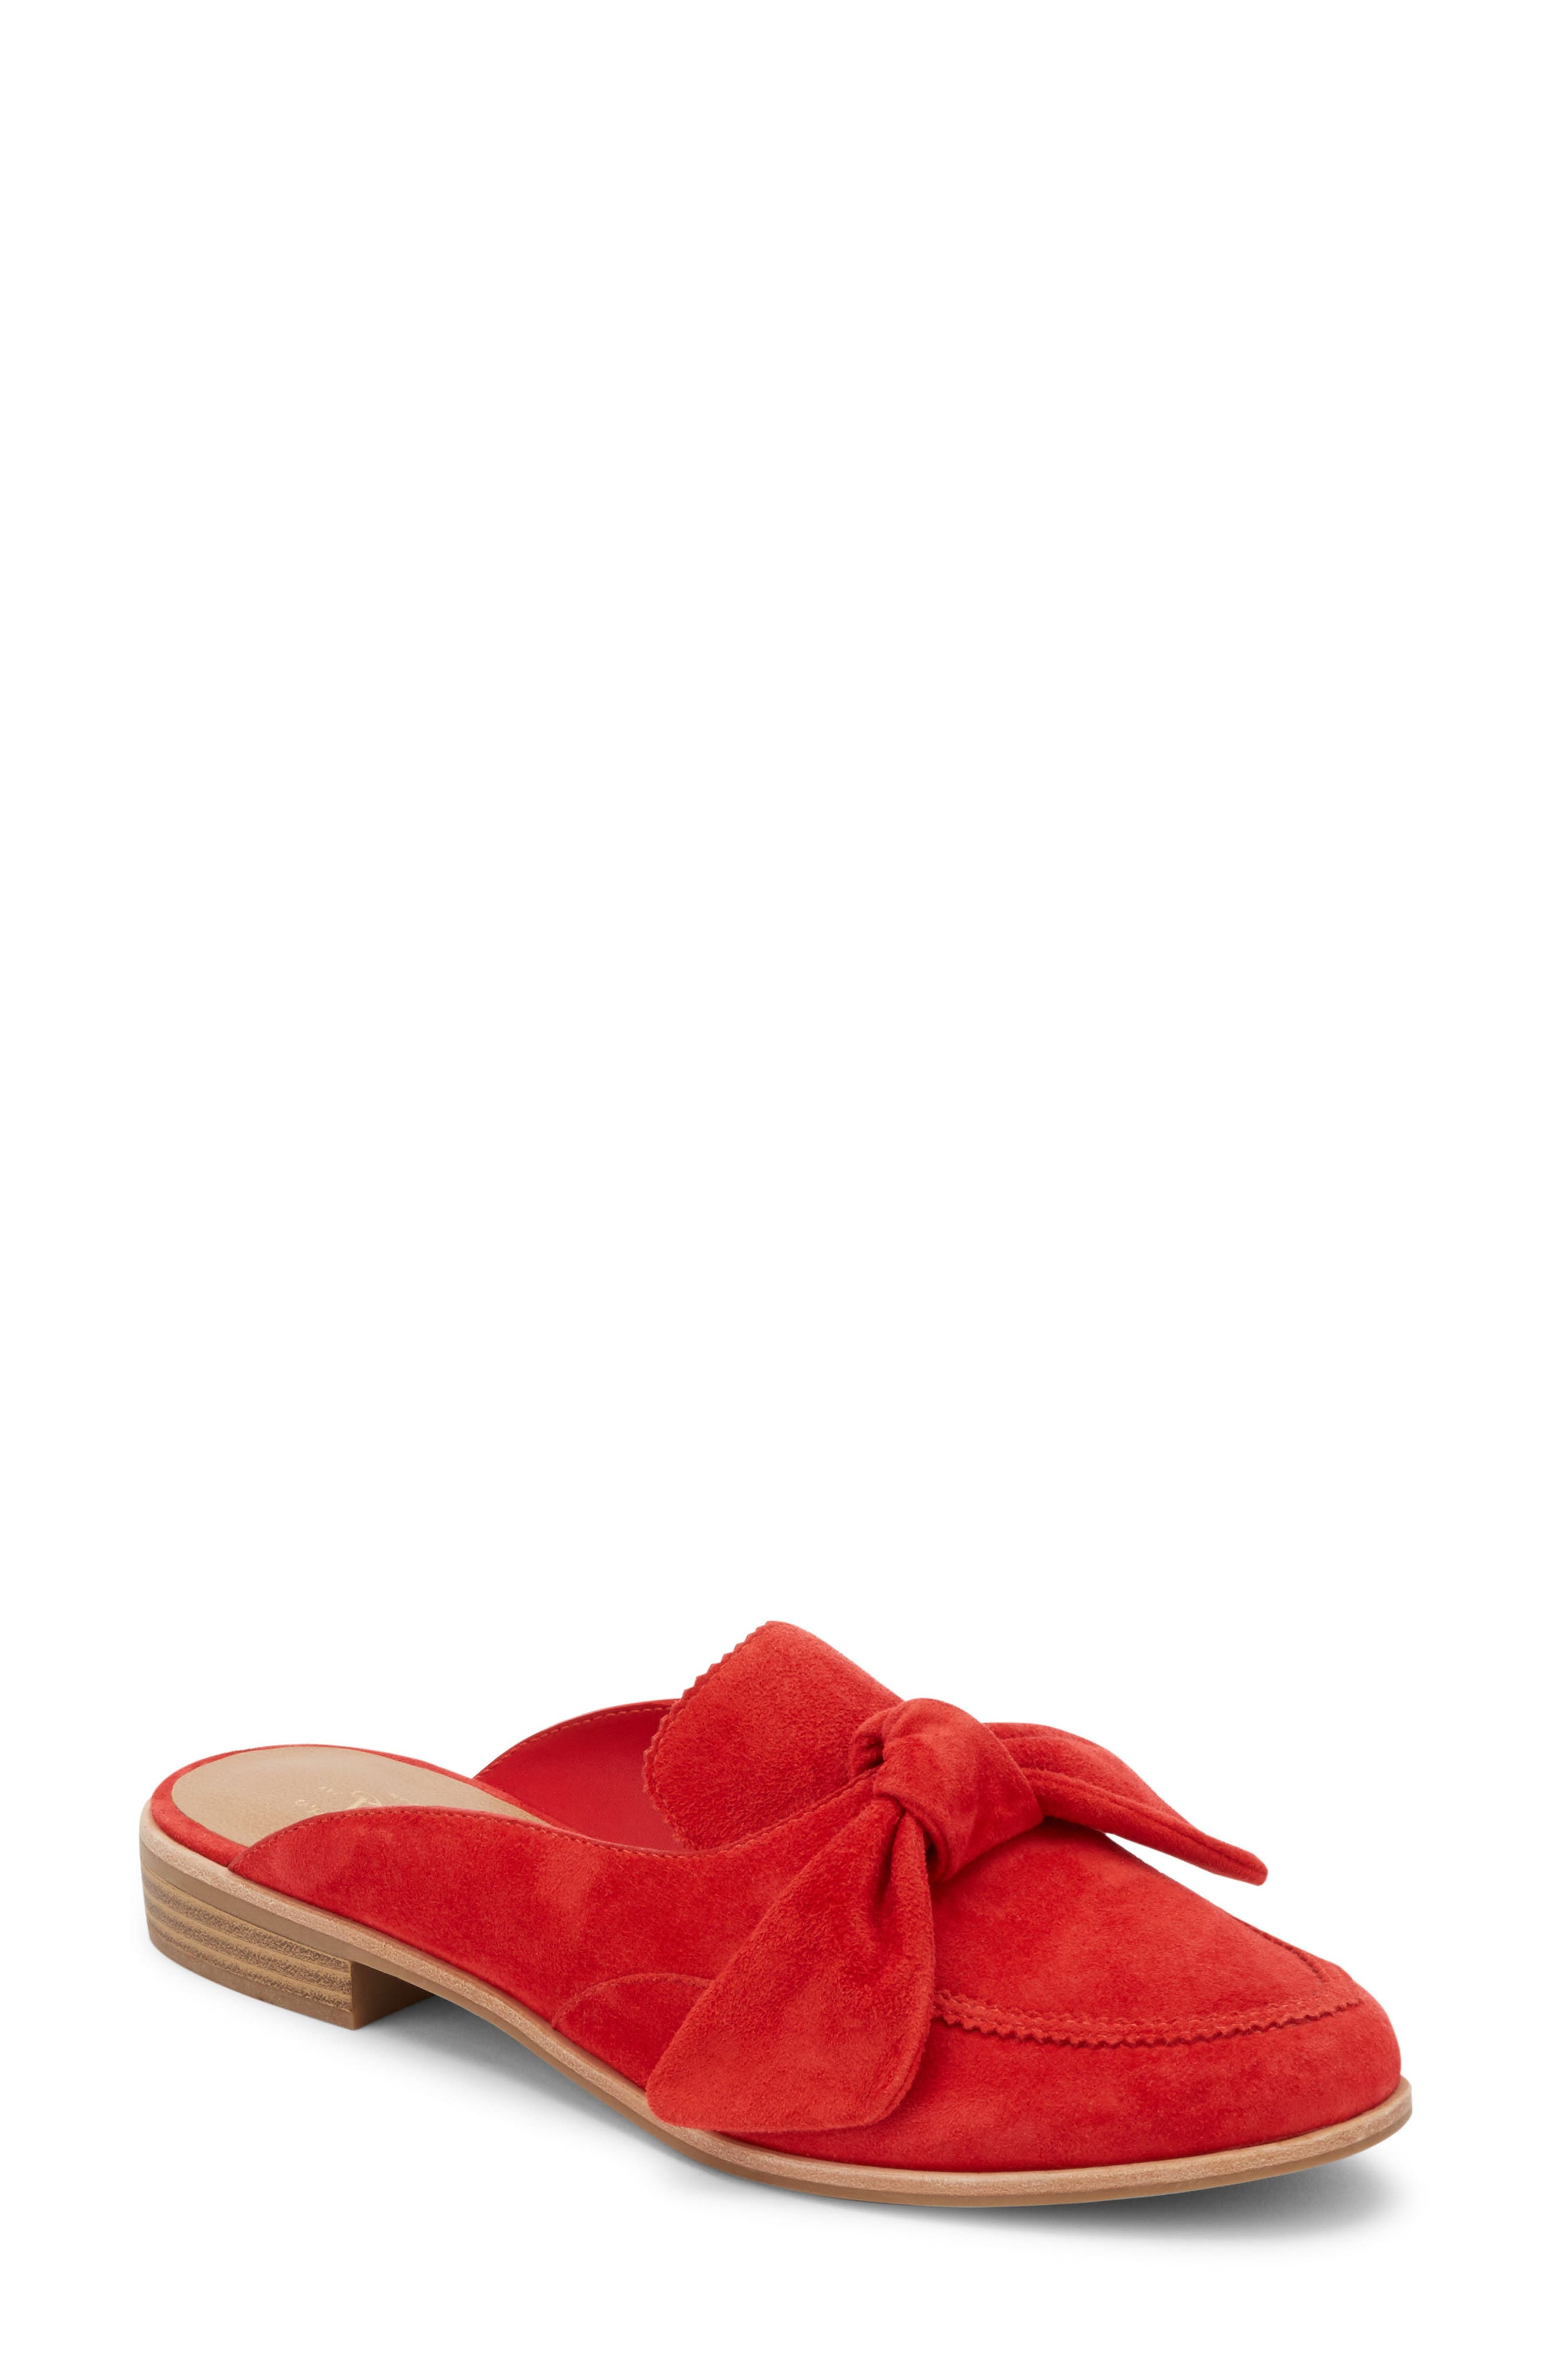 Ebbie Bow Mule,                             Main thumbnail 1, color,                             Red Suede